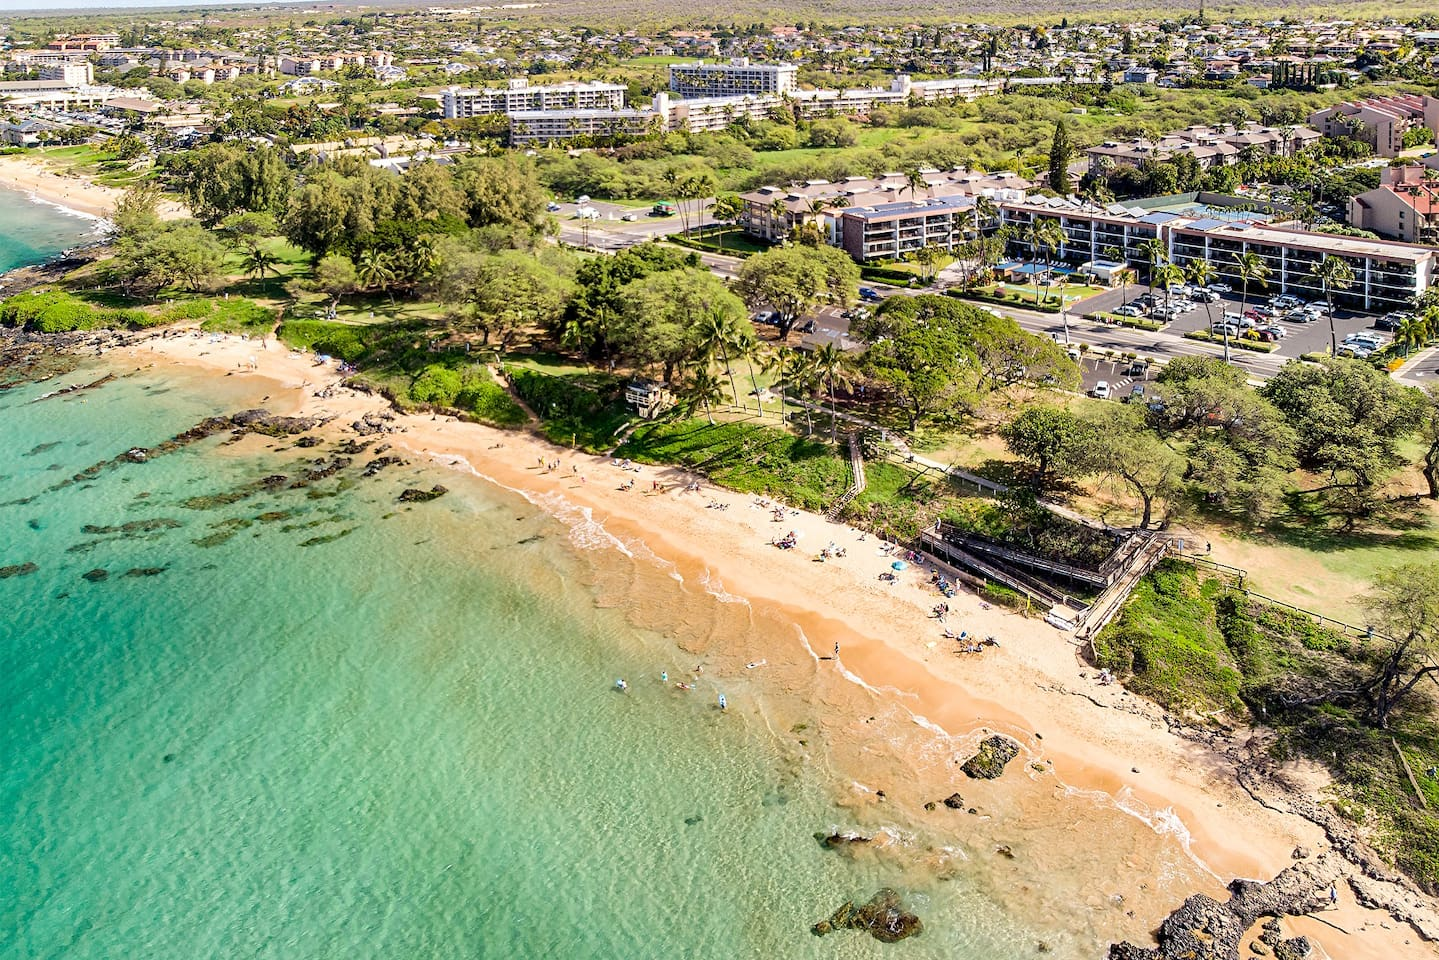 Maui Parkshore is located directly across the street from stunning Kamaole III Beach, with warm water swimming and great snorkeling. The unit is 45 seconds to the sand.